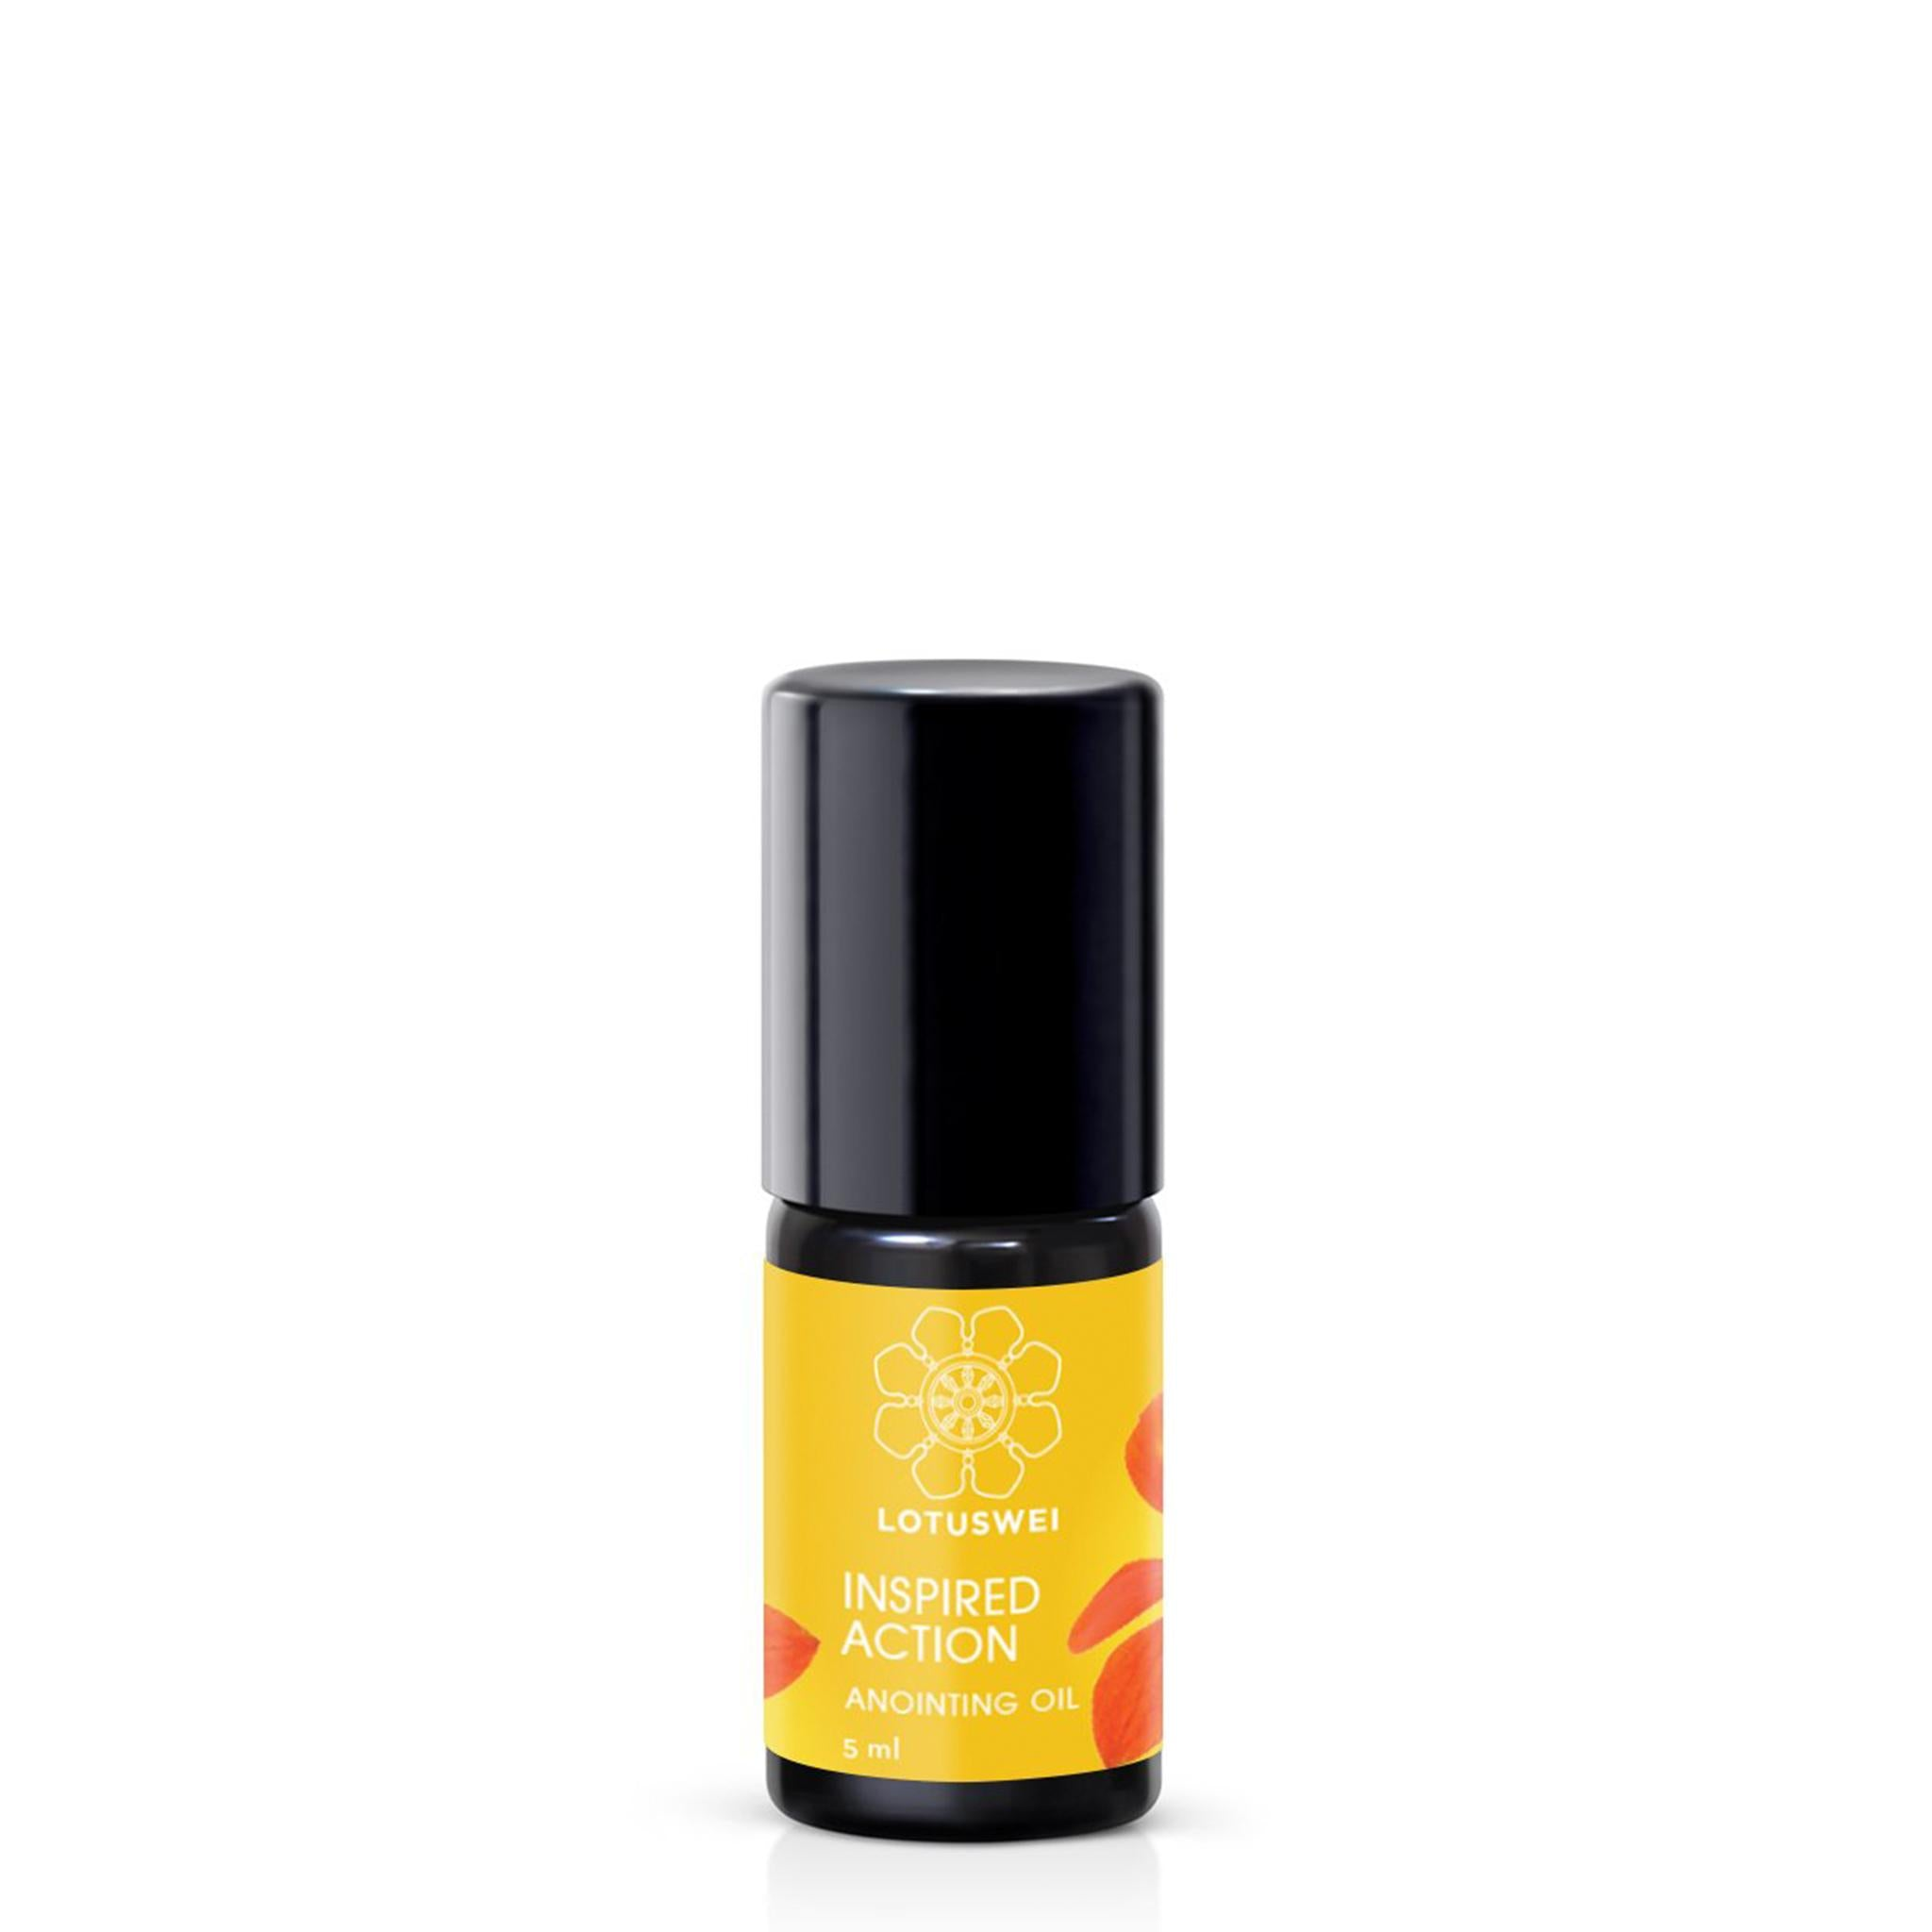 Lotuswei - Inspired Action Anointing Oil